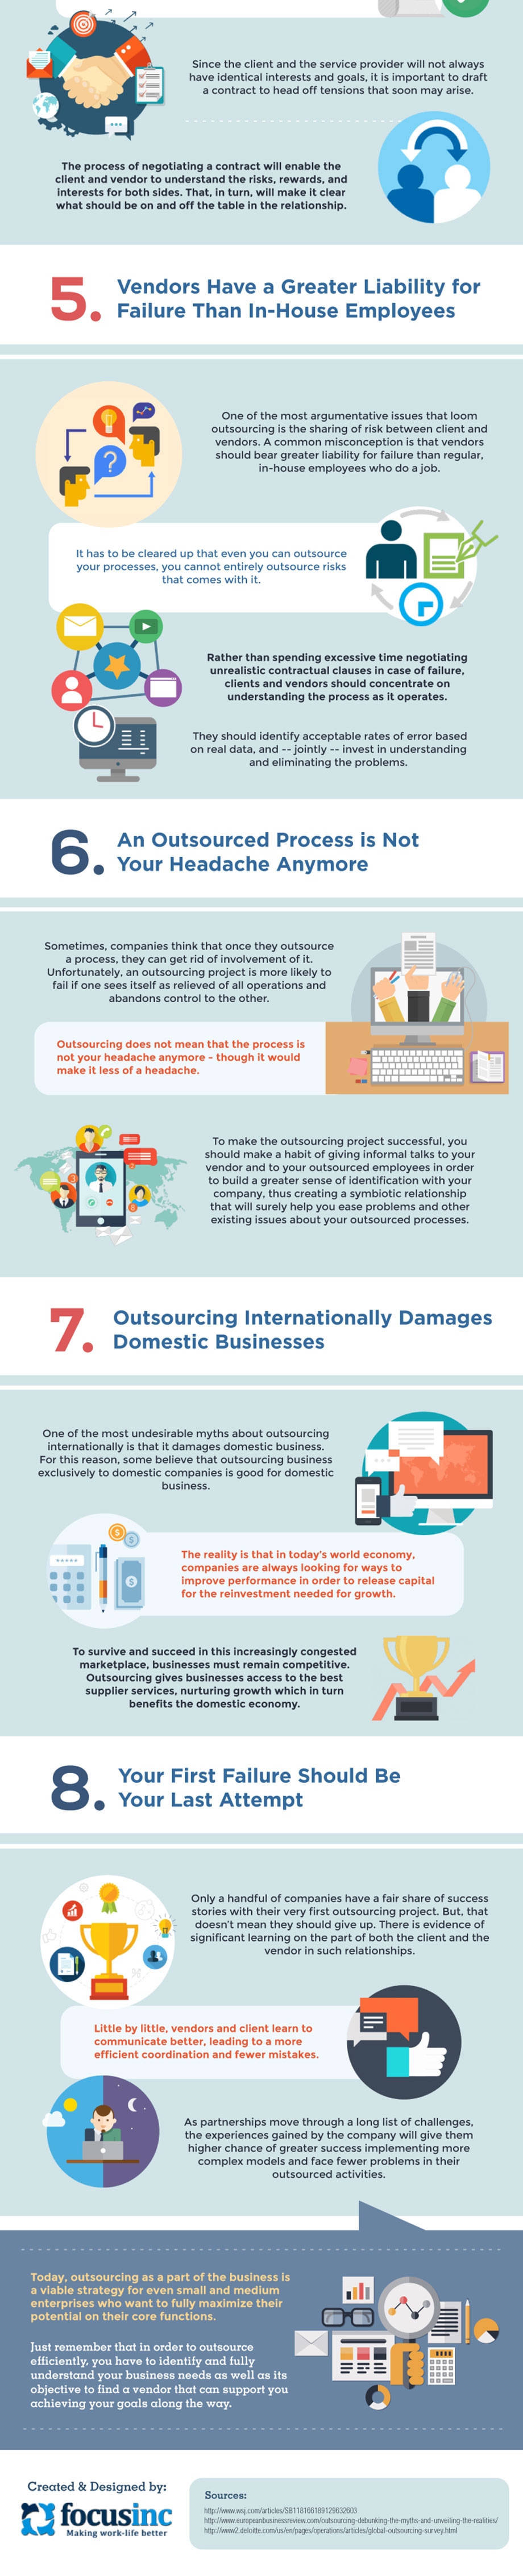 8-common-misconceptions-about-outsourcing-hd-2